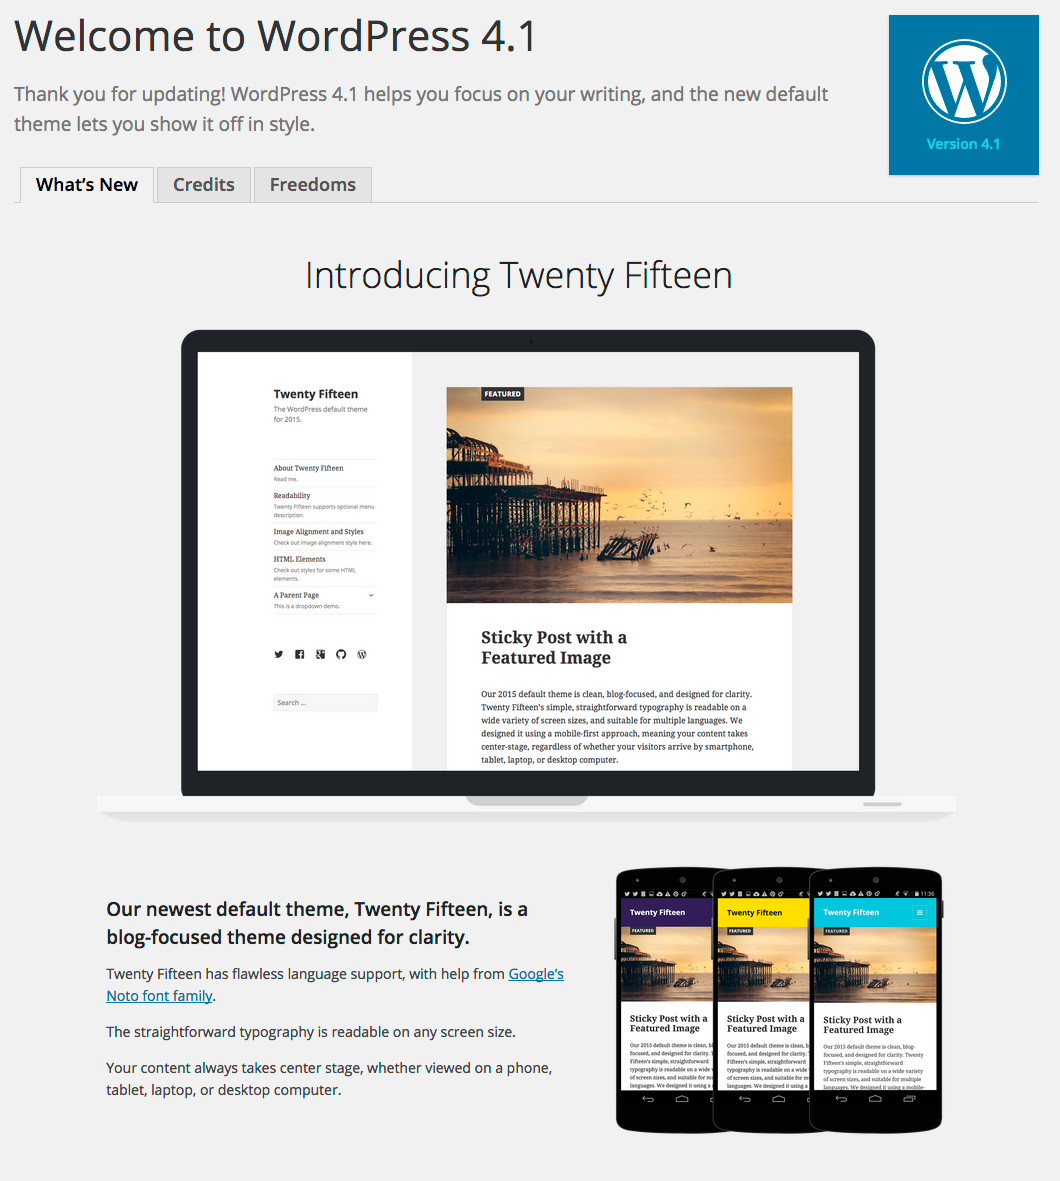 The WordPress 4.1 About Screen